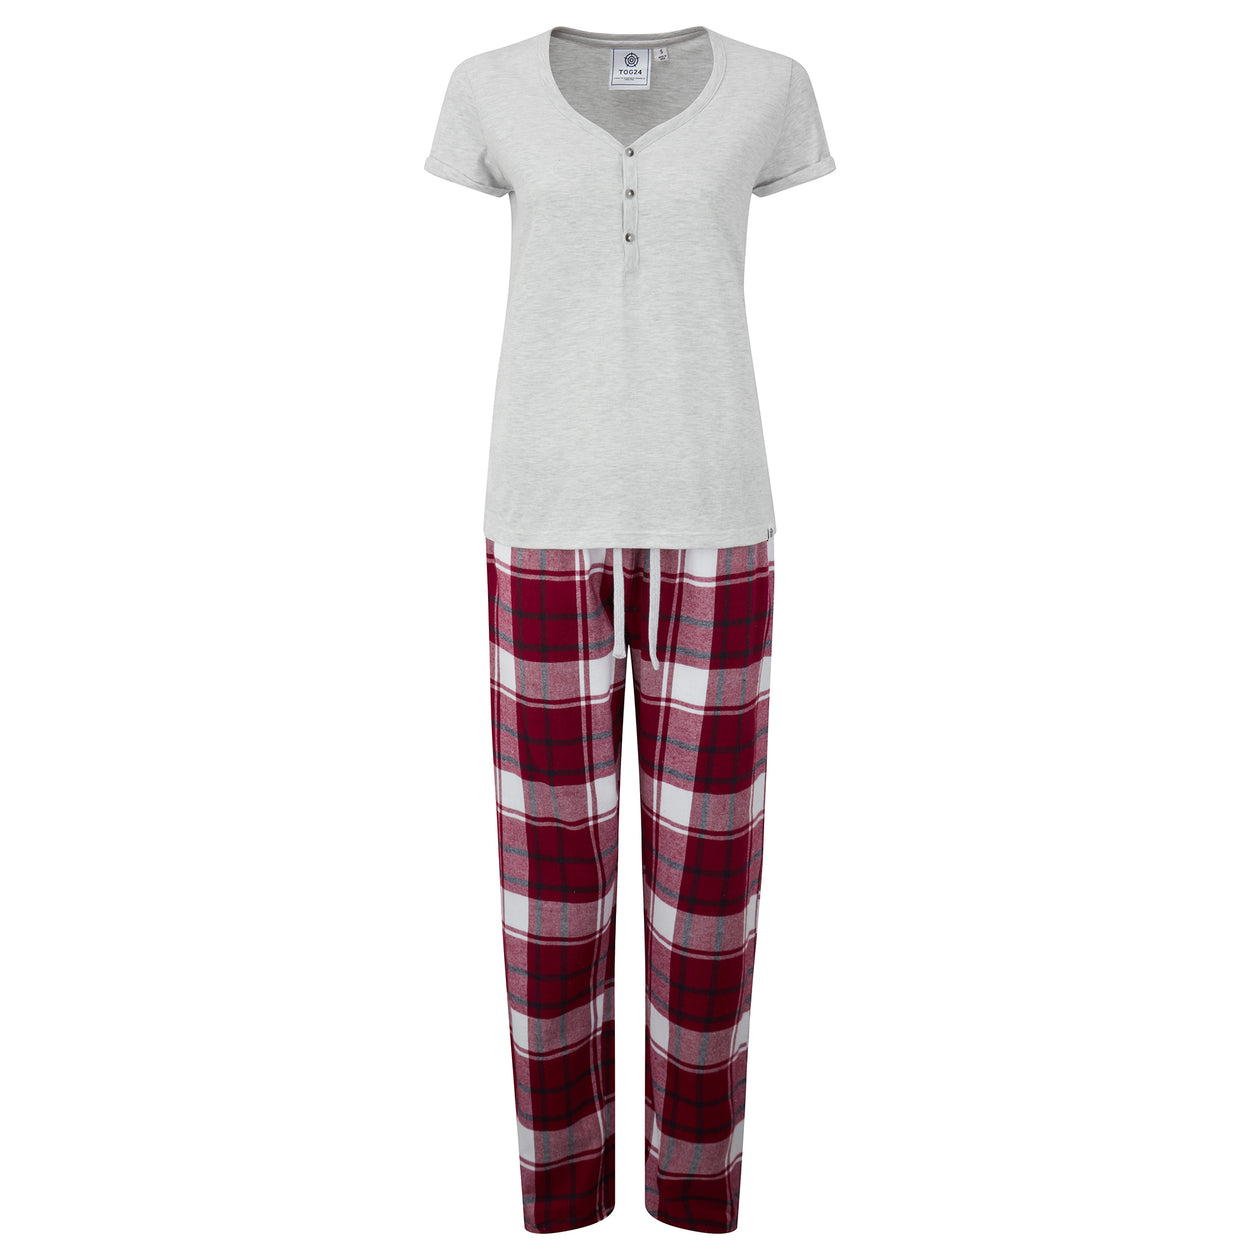 Snuggle Womens Pant Set - Raspberry image 4